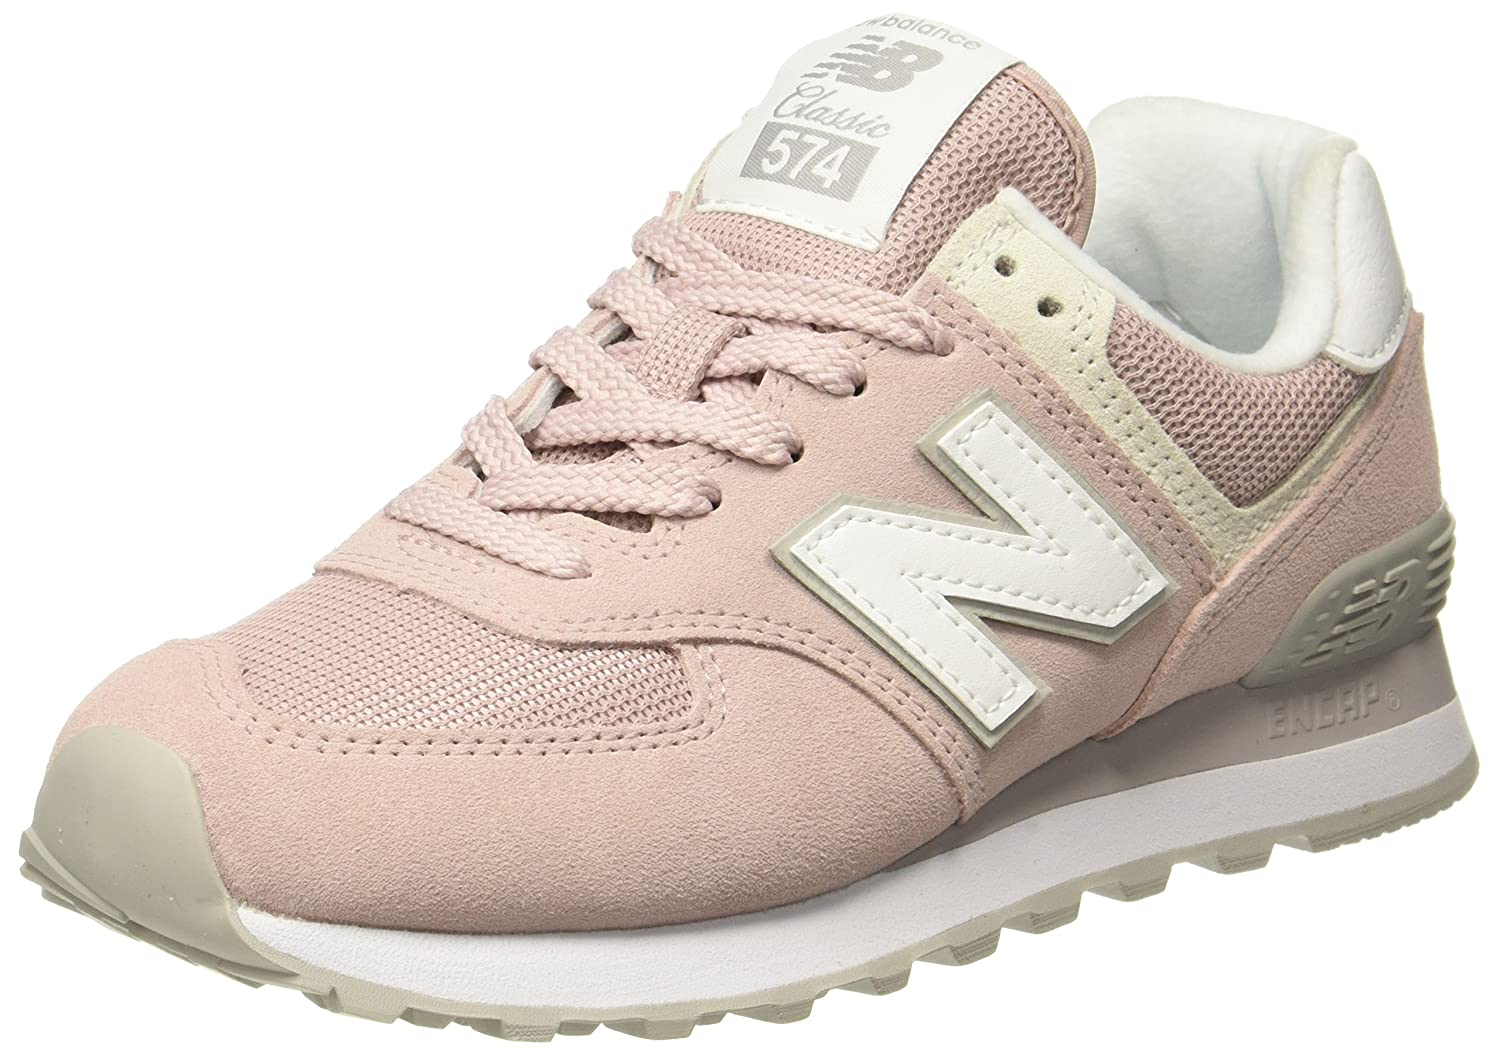 New Balance B00MY4MVGQ Wl574, 19994 Bottes Bottes Classiques Femme Rose (Pink) 11ac943 - fast-weightloss-diet.space